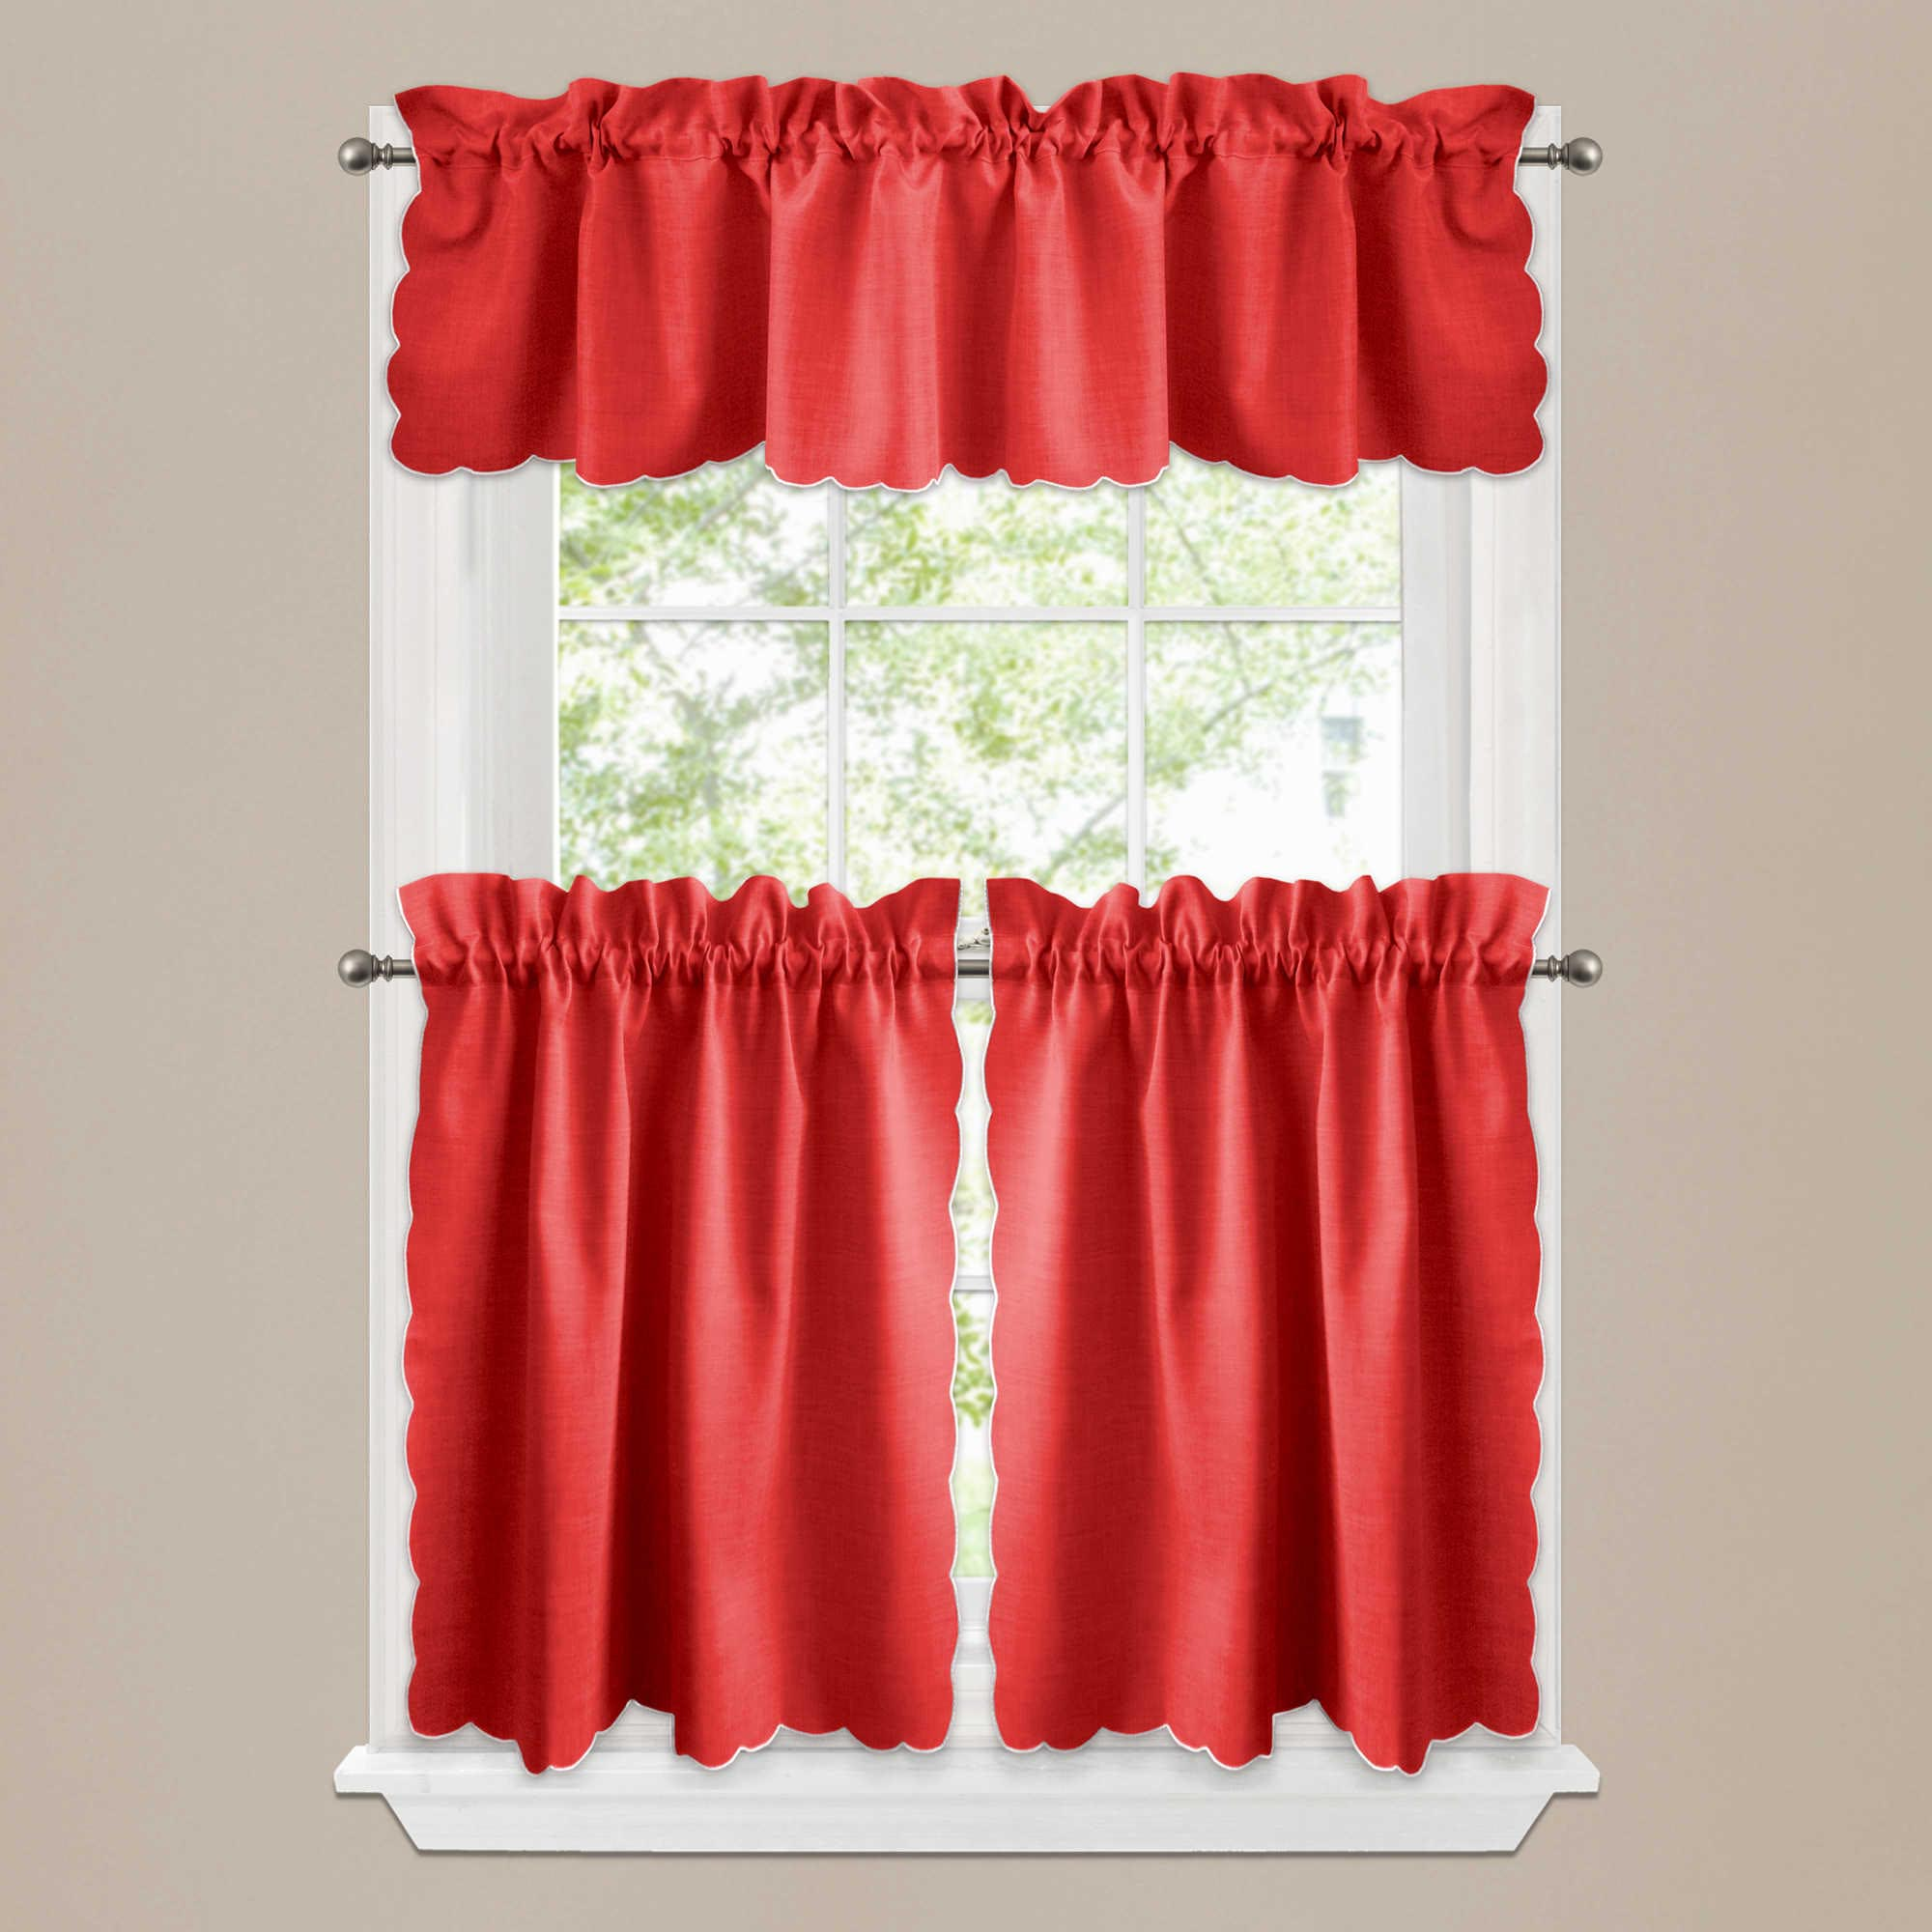 Striped Shower Curtain Target Red Curtains with Tie Backs